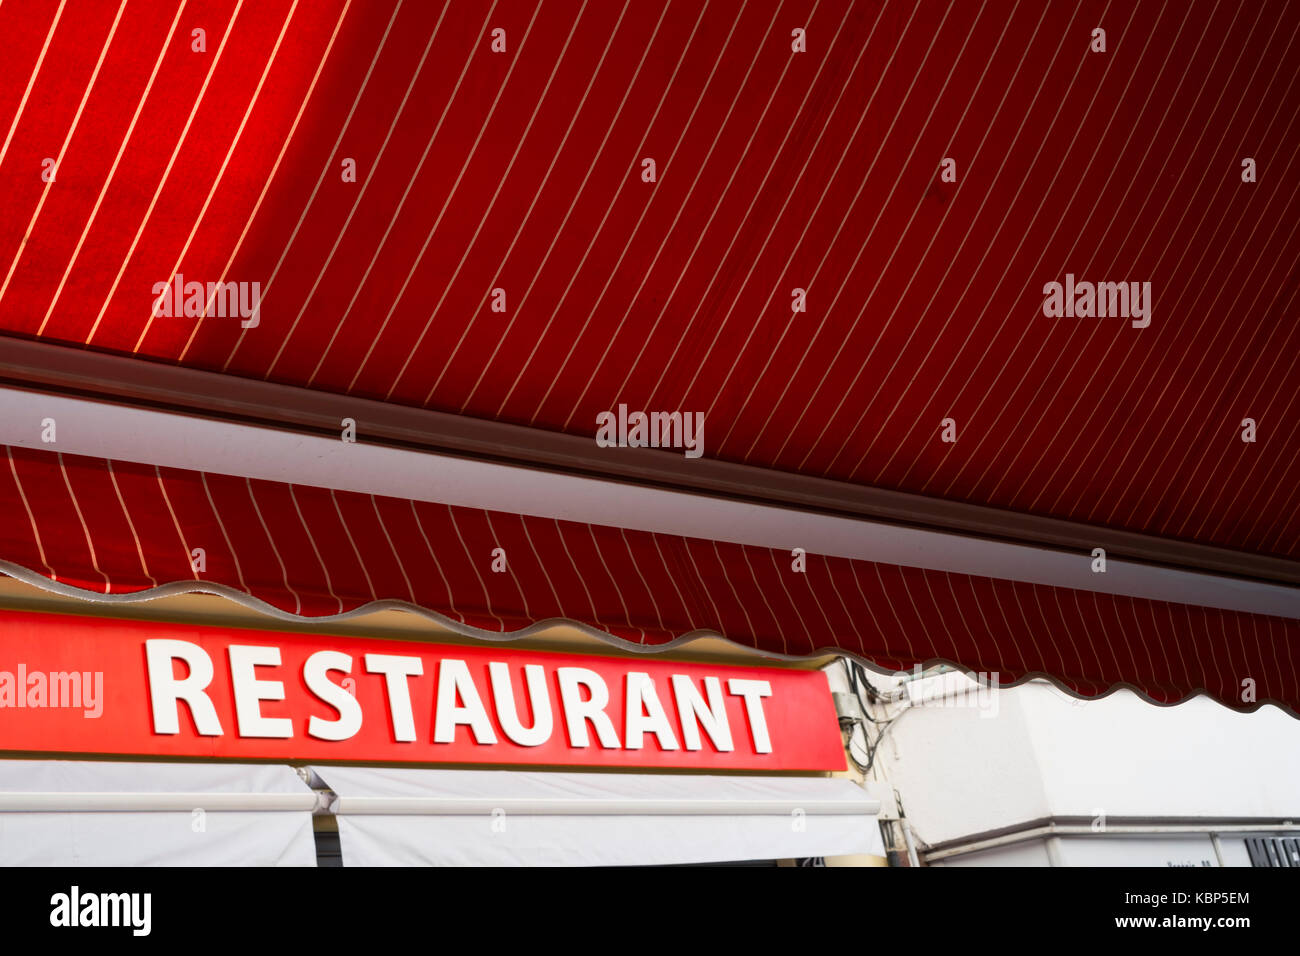 A red canopy opposite a red restaurant sign in Lloret de Mar, Spain Stock Photo